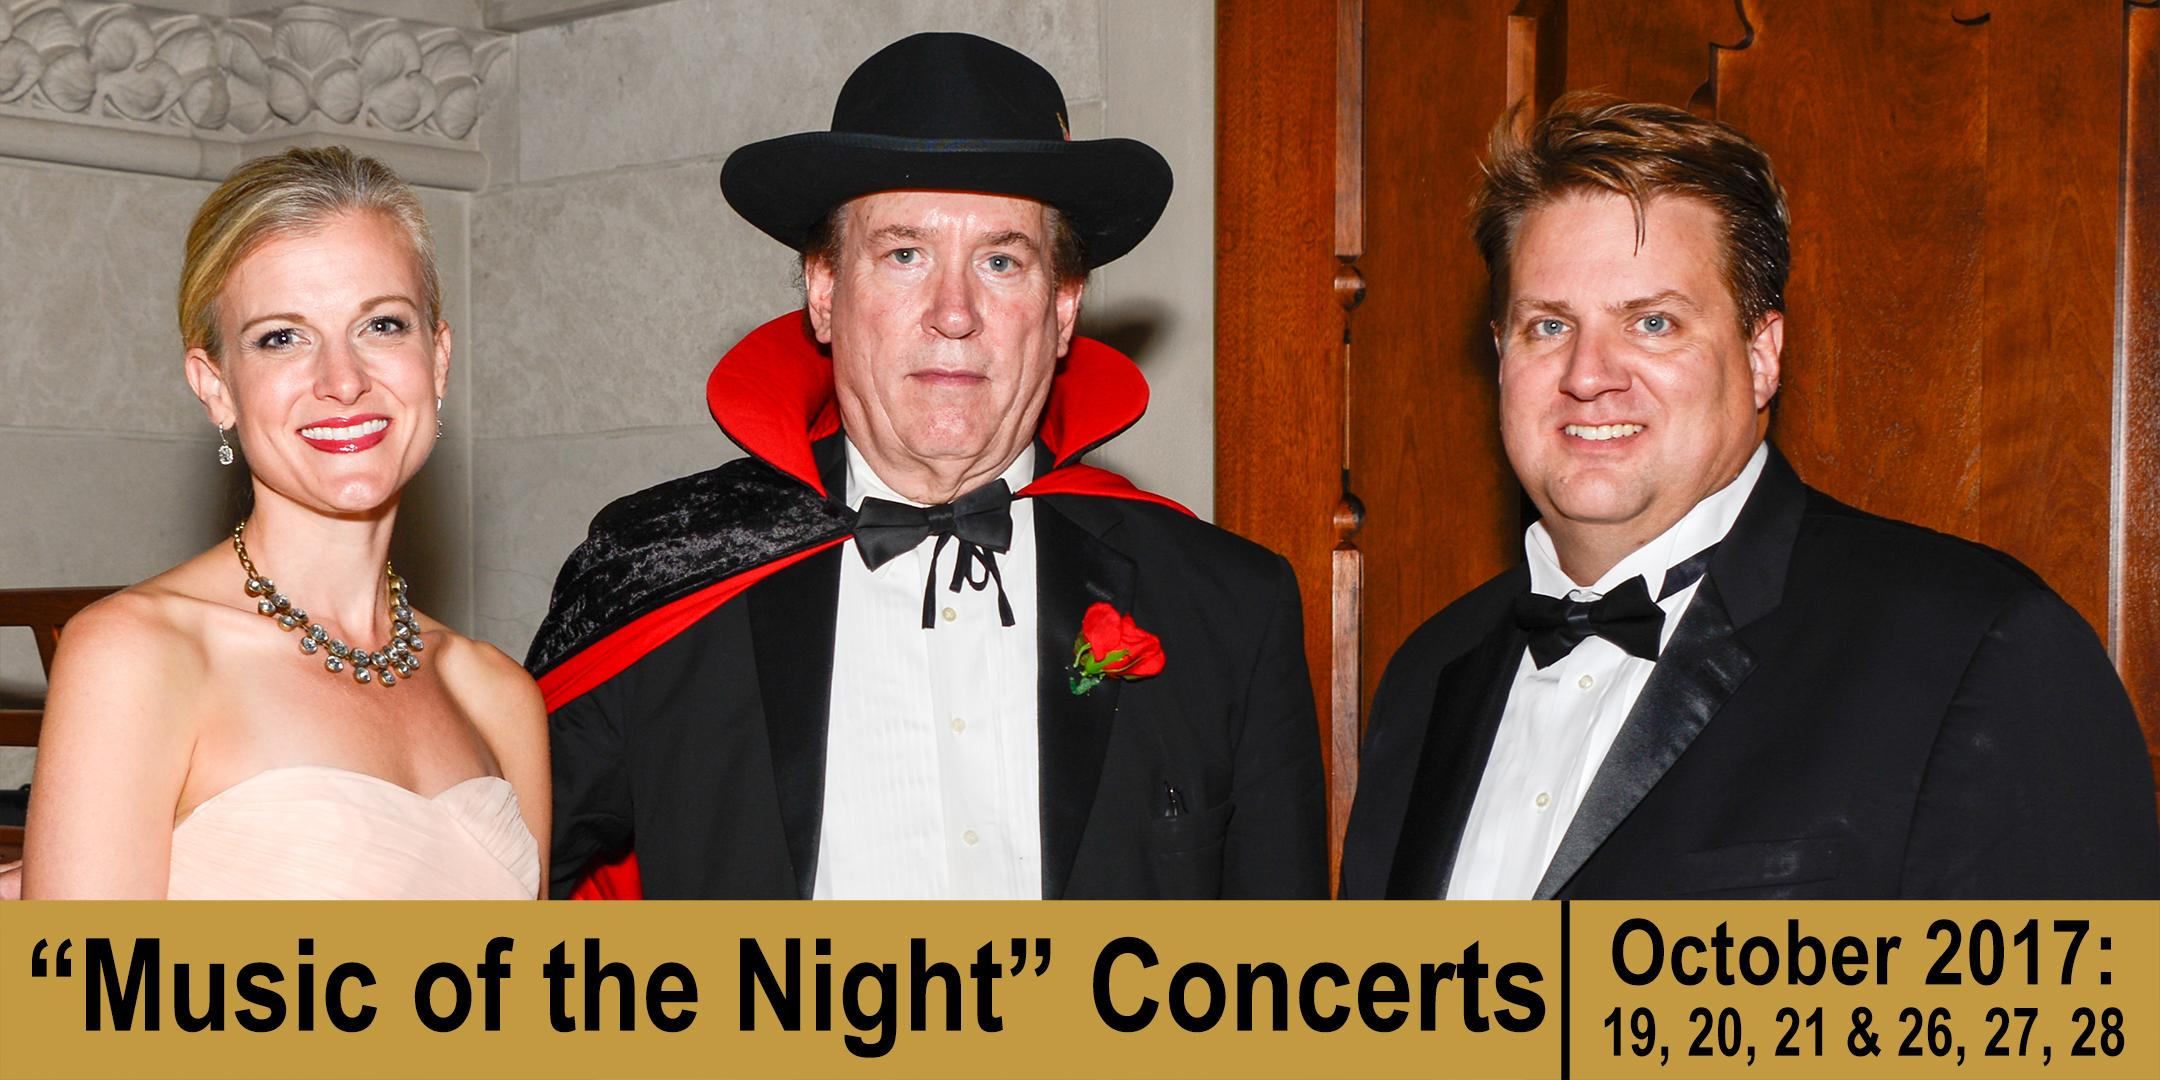 """""""Music of the Night"""" Concert (SATURDAY, 10/28/17)"""